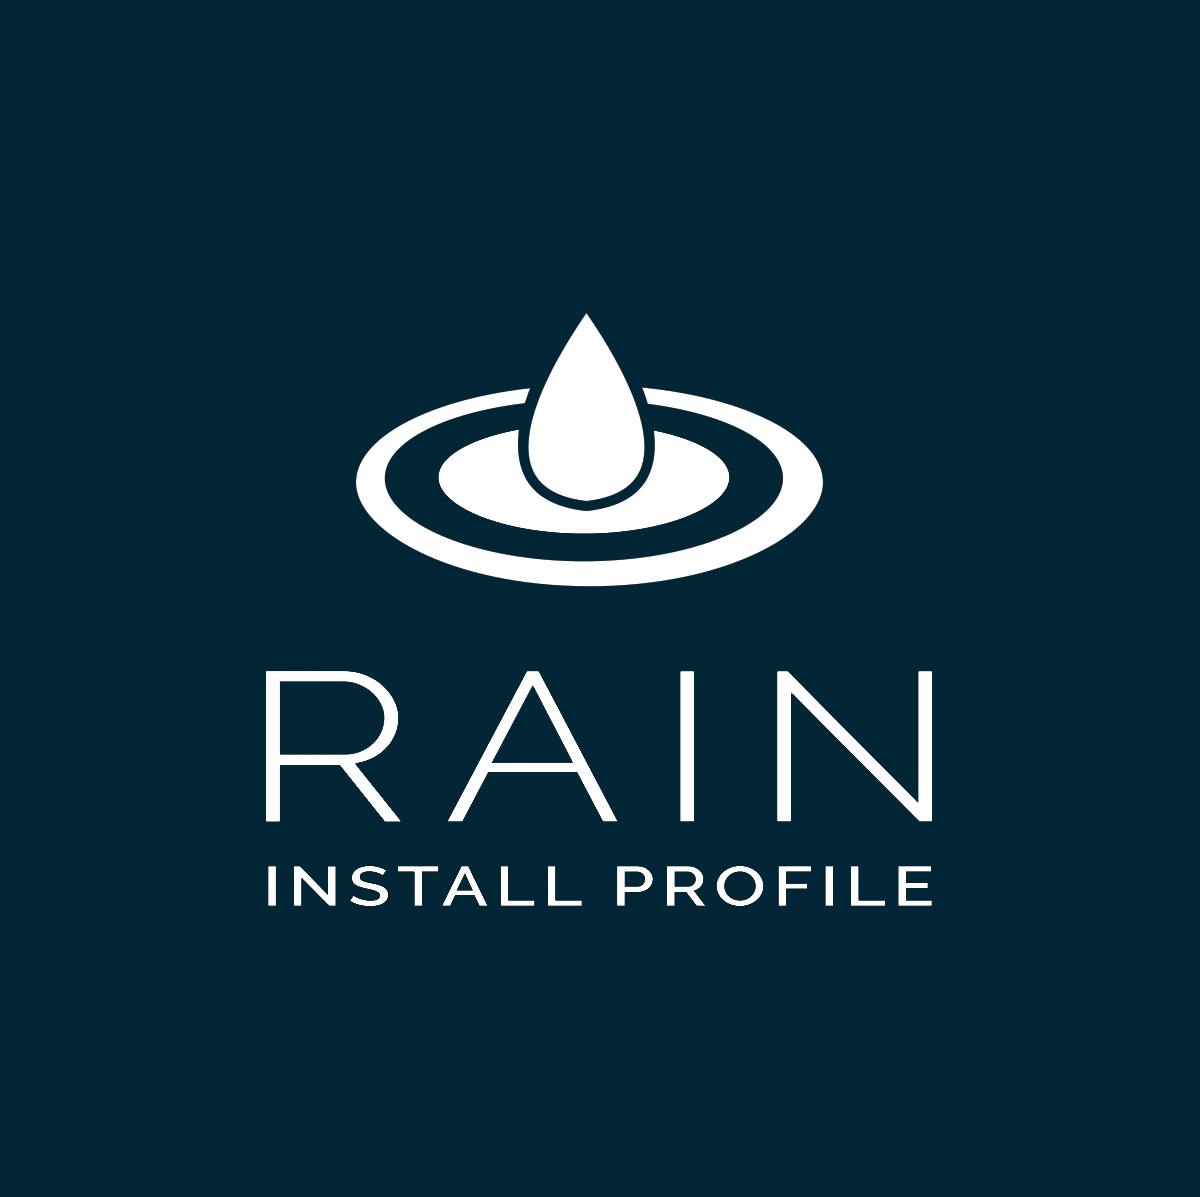 Rain logo updated